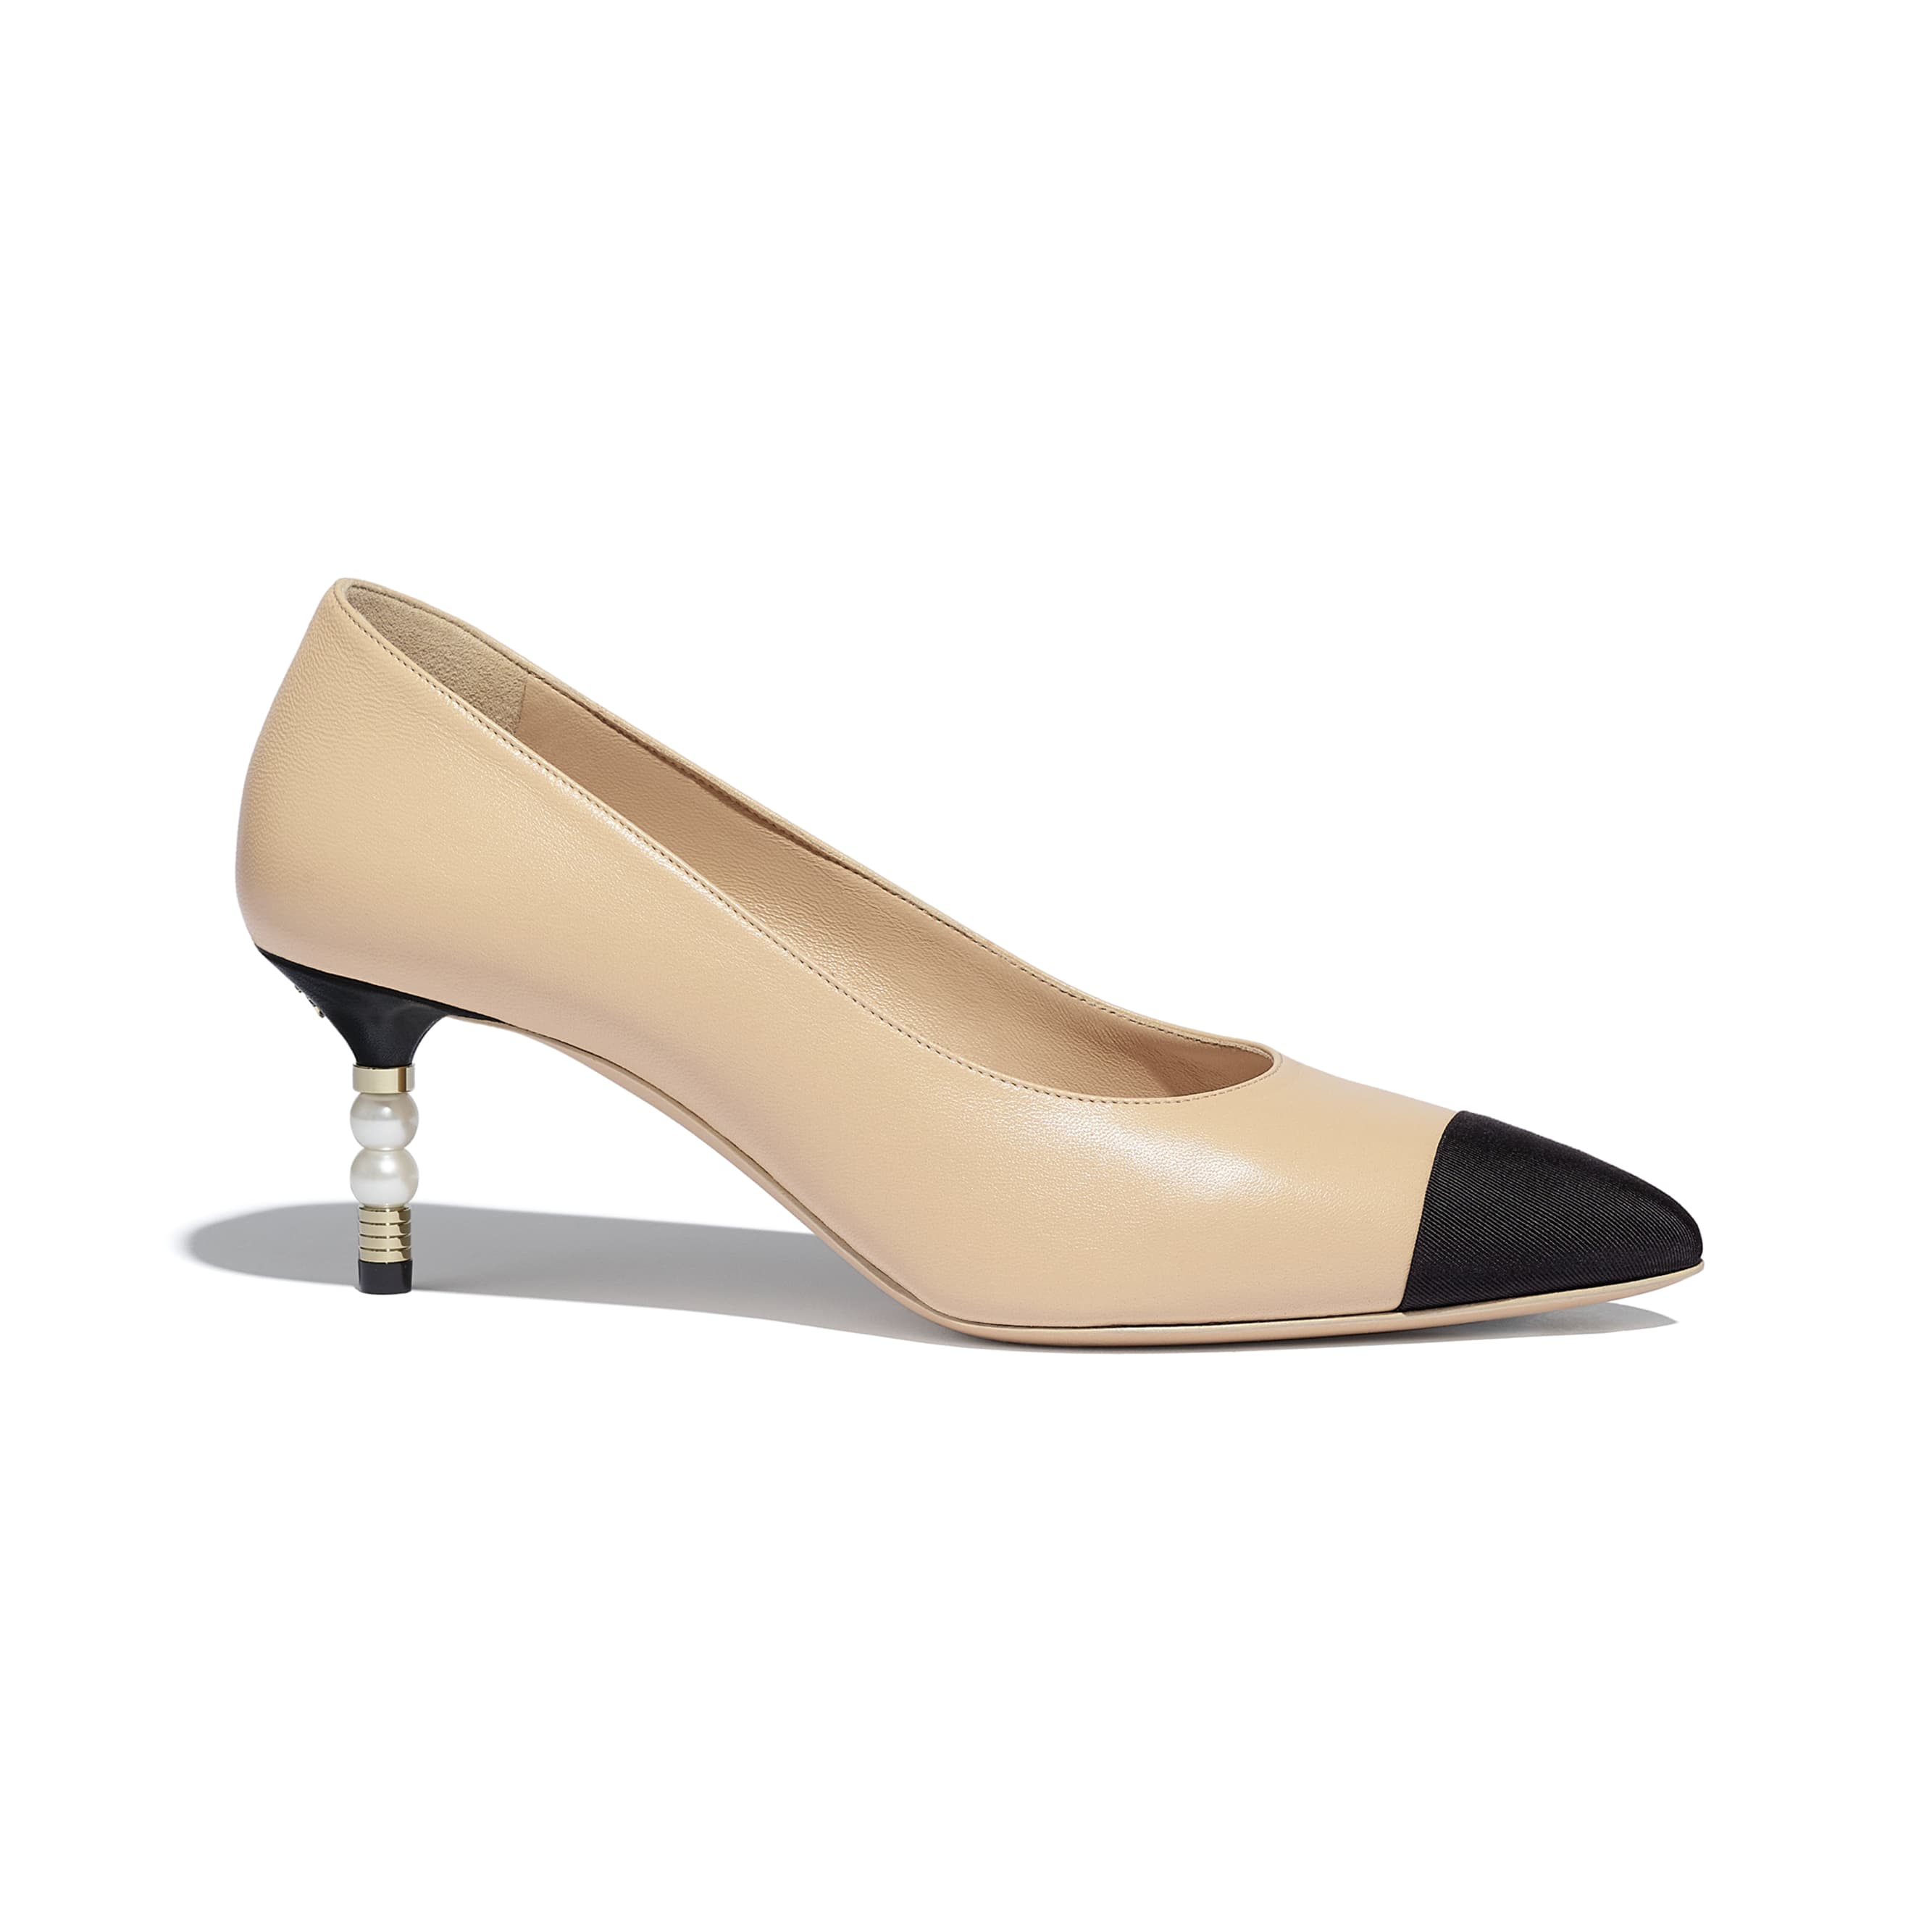 Pumps - Beige & Black - Lambskin & Grosgrain - Default view - see standard sized version